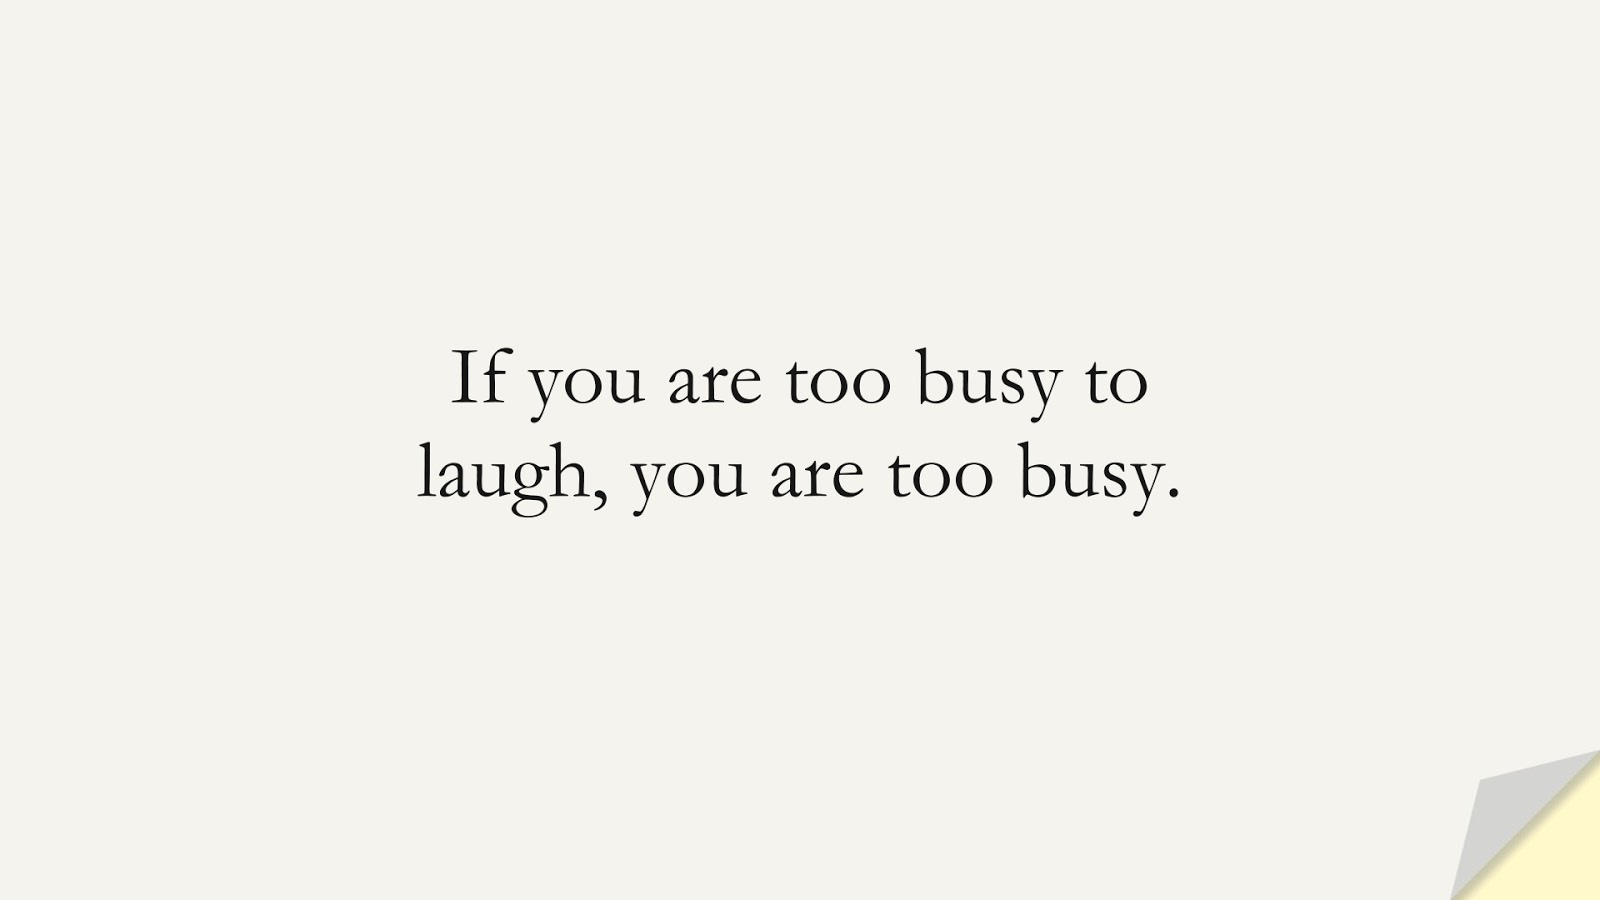 If you are too busy to laugh, you are too busy.FALSE